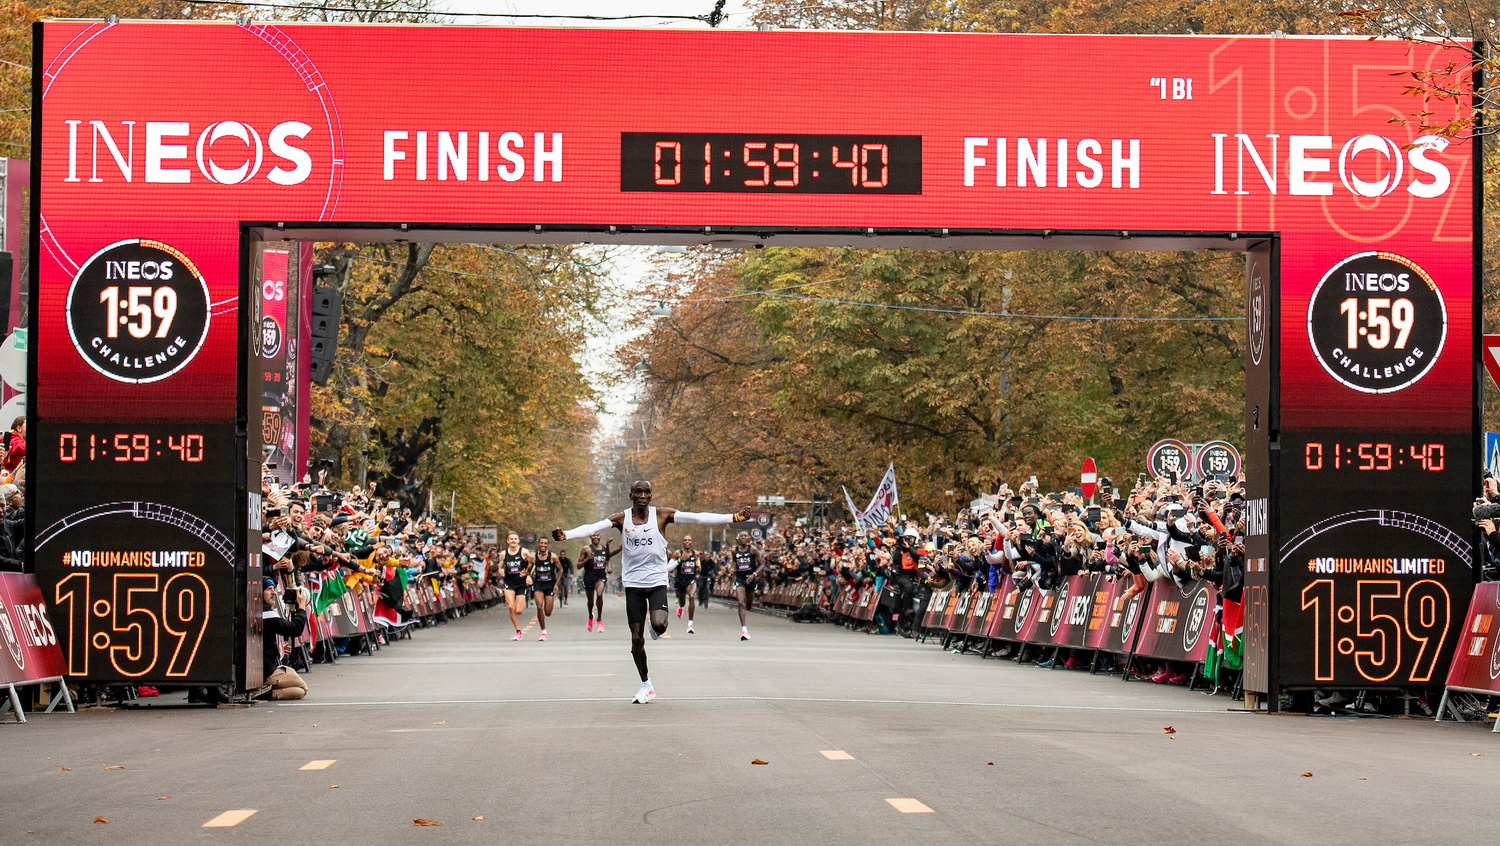 History is made as Eliud Kipchoge becomes first human to break the two-hour marathon barrier - Athletics Illustrated